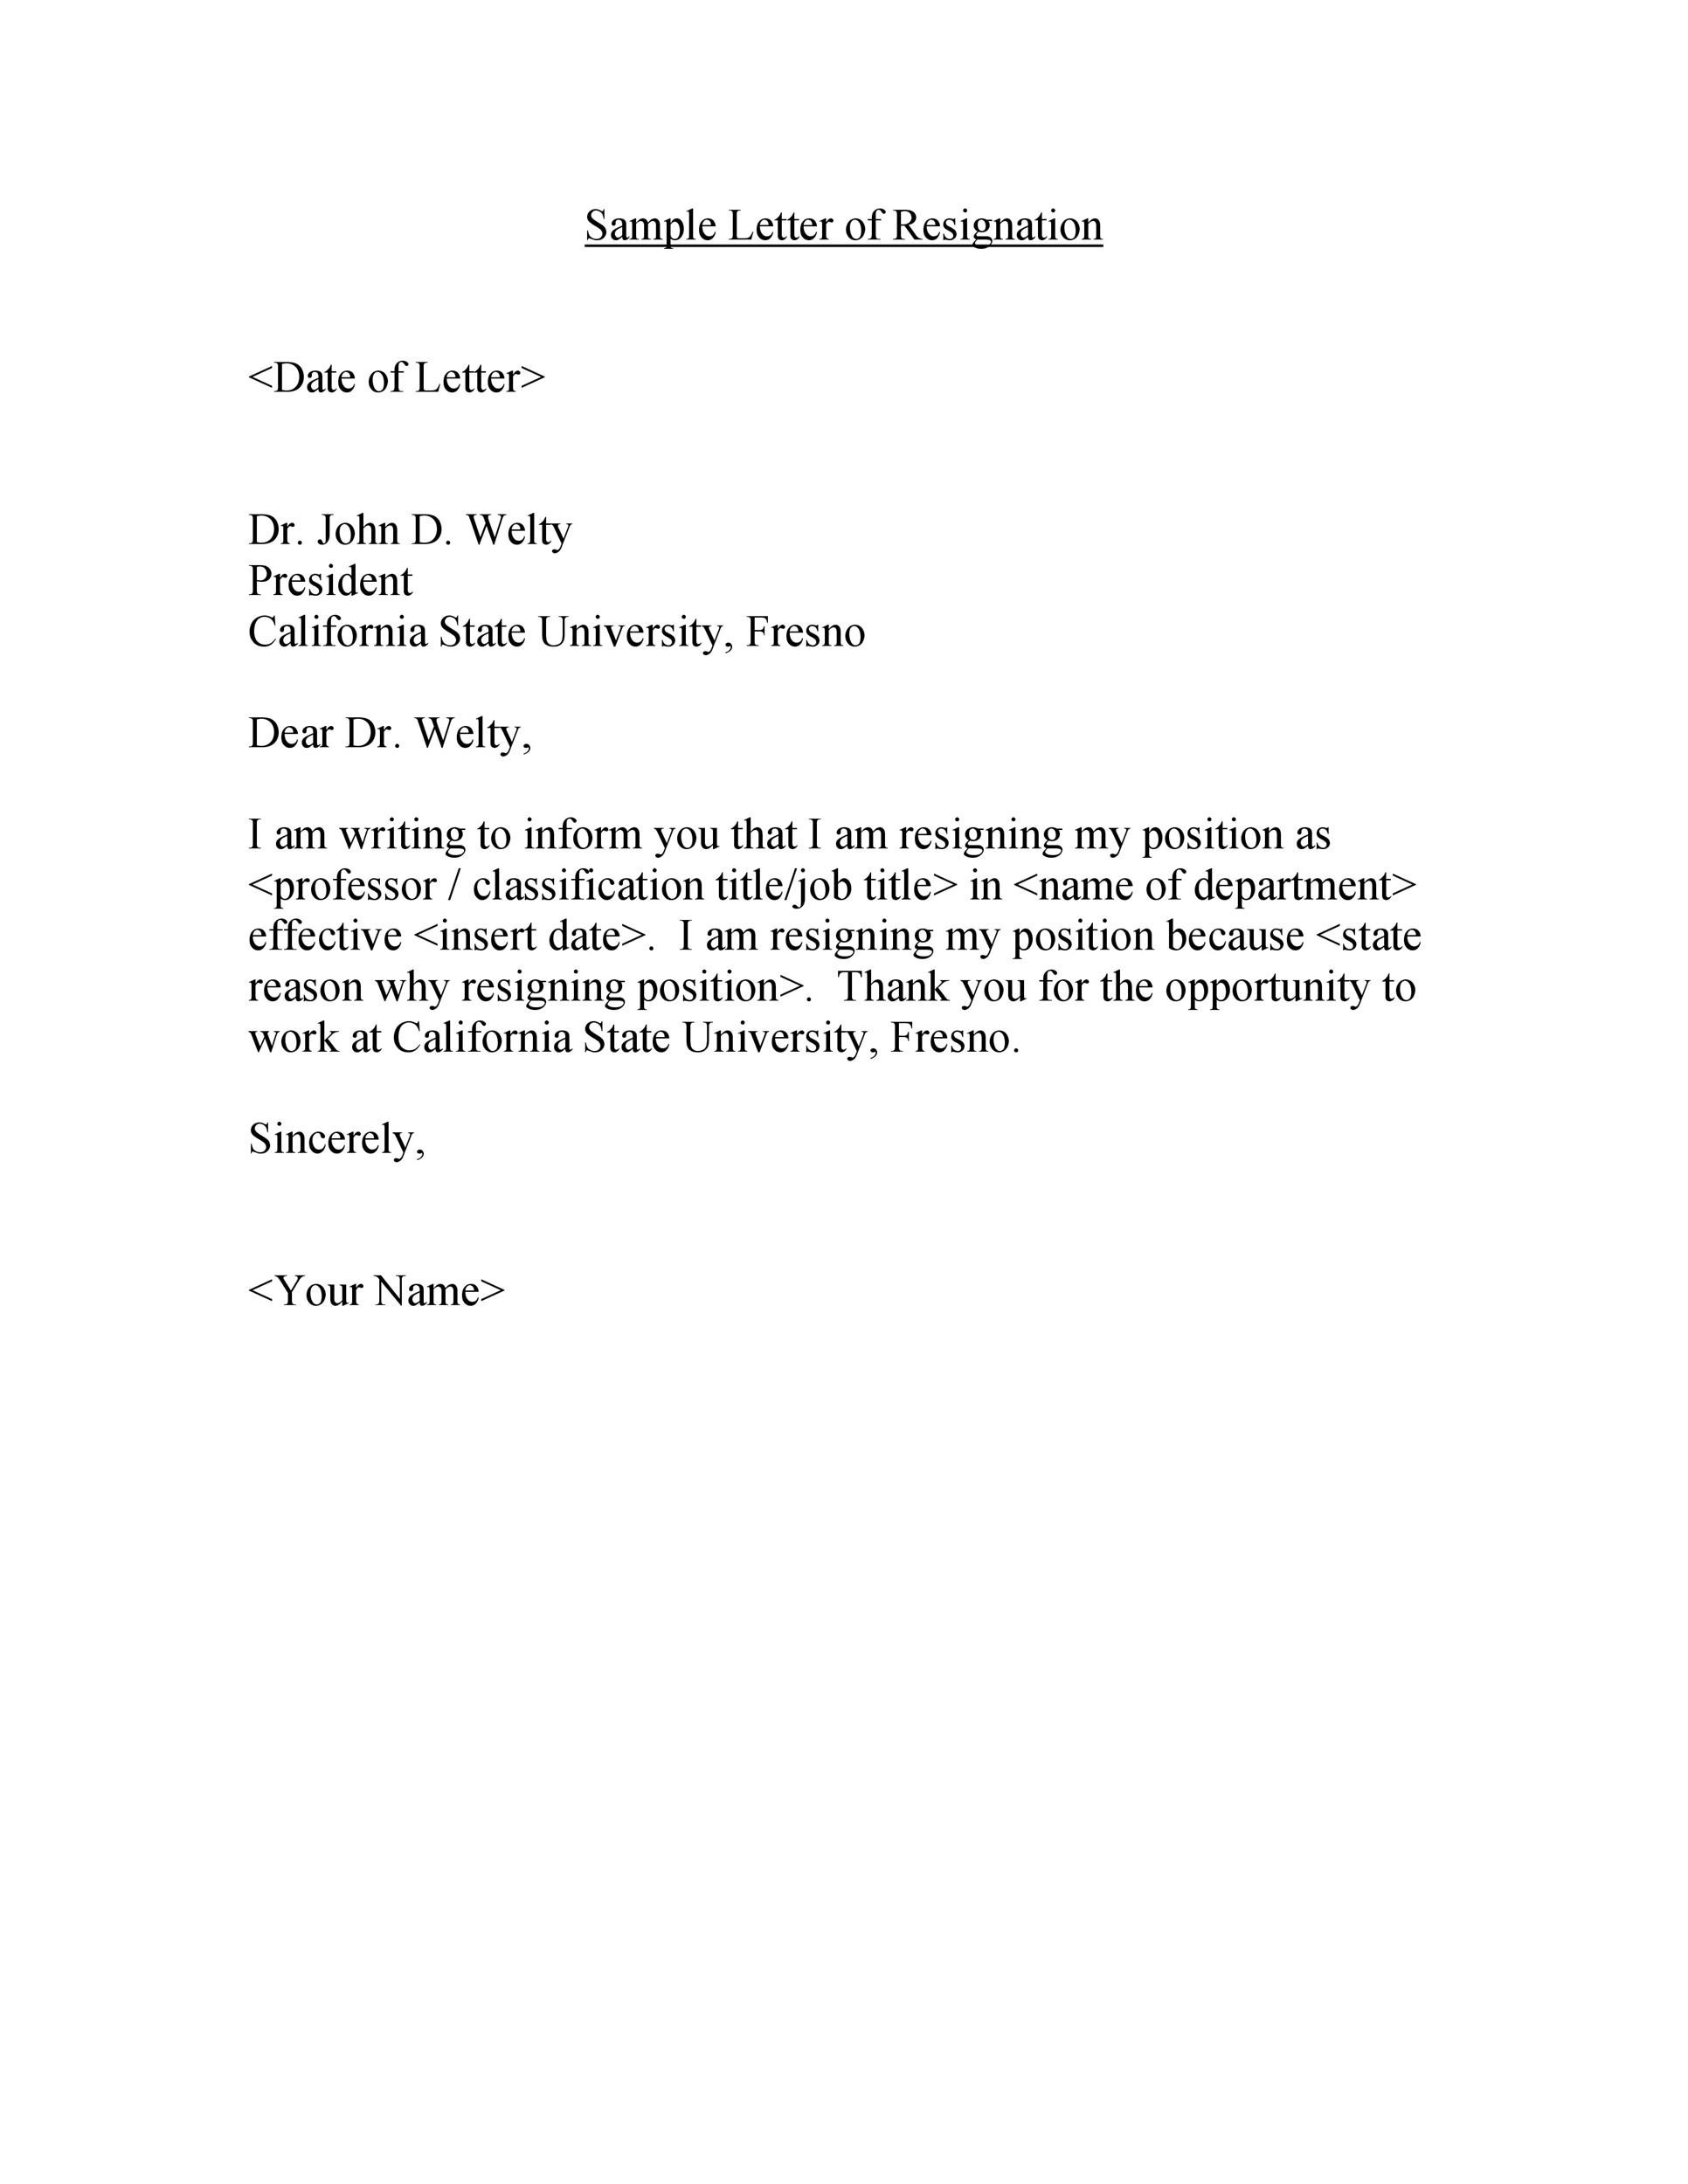 50 Best Teacher Resignation Letters  Ms Word   U1405 Templatelab